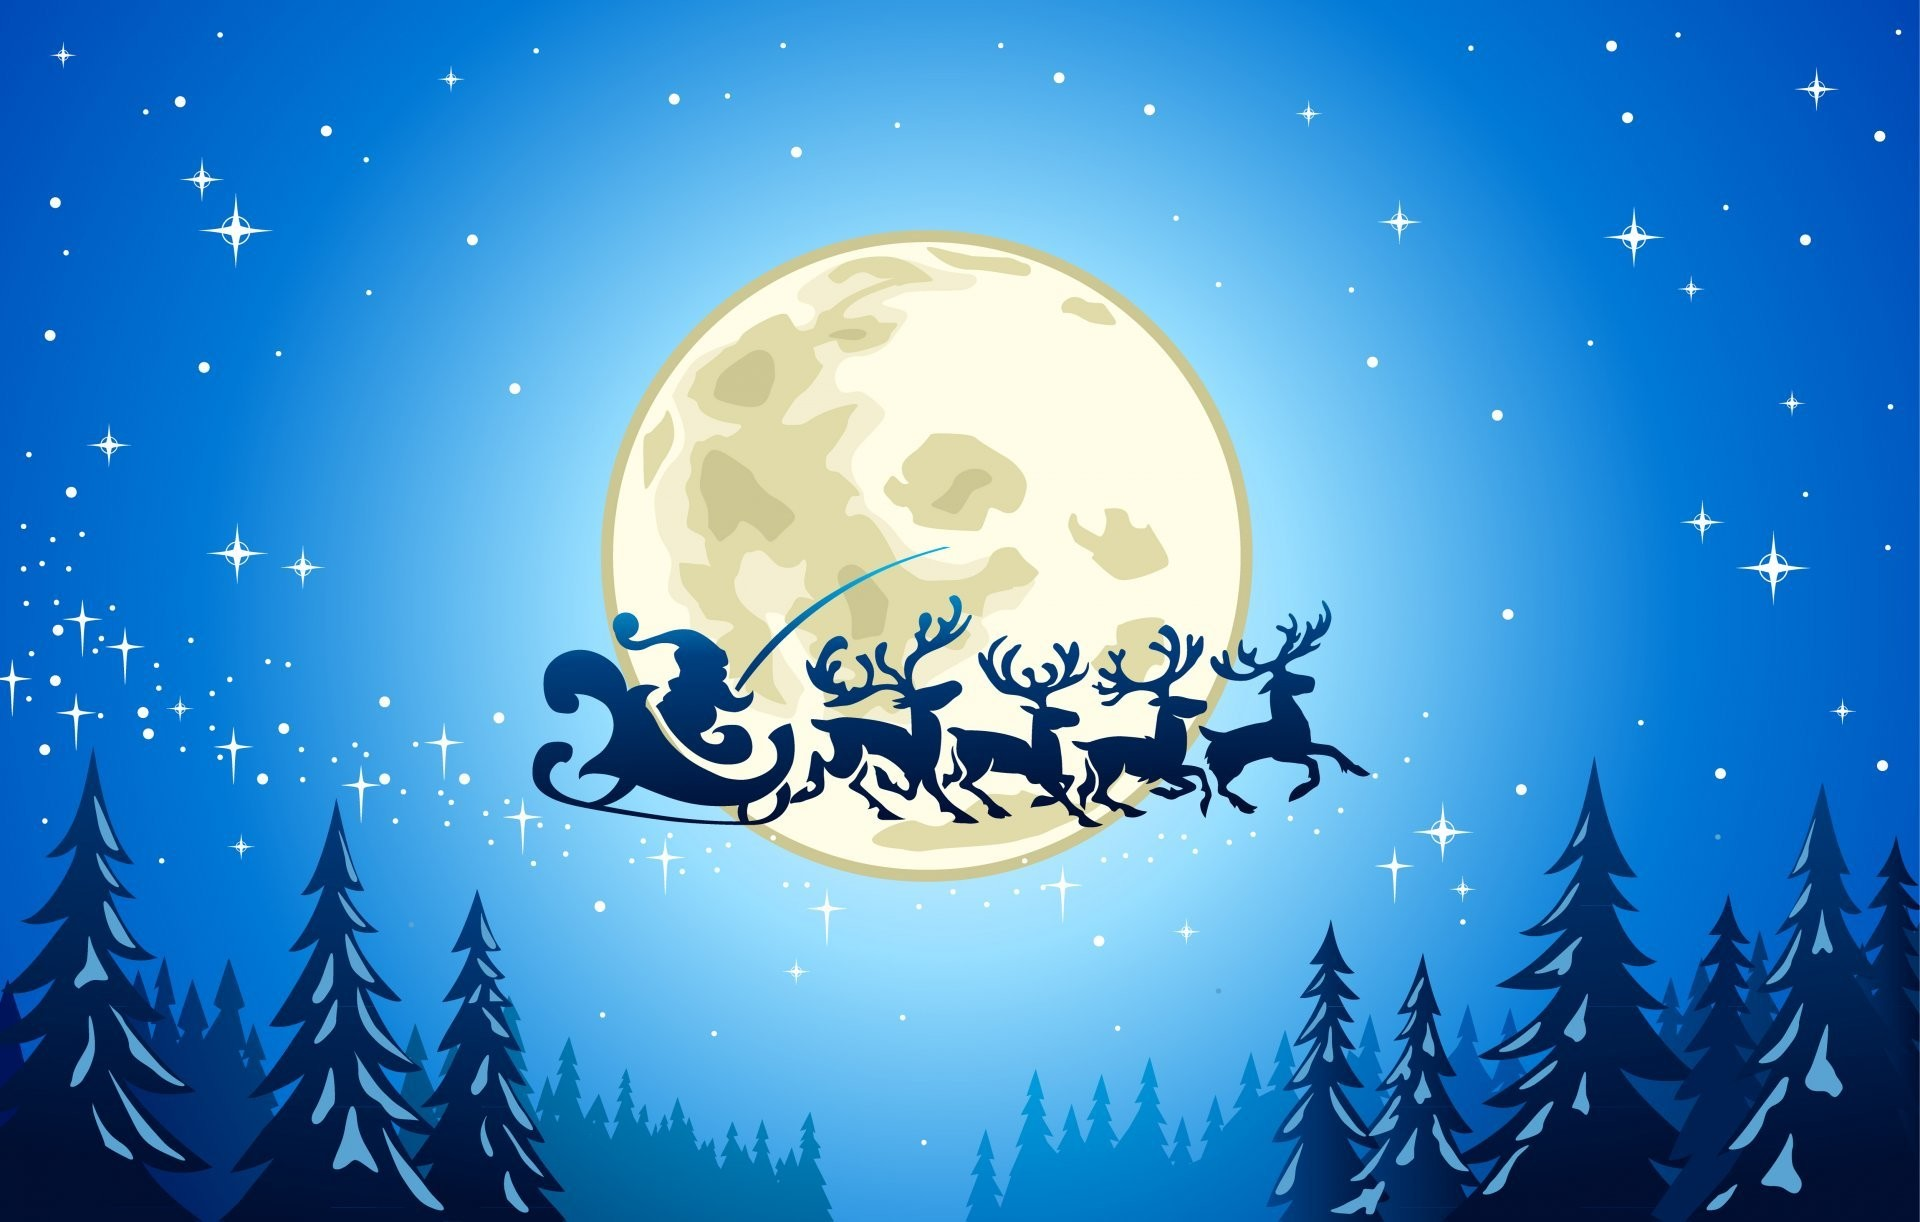 new year merry christmas snow trees ice town full moon reindeer houses stars  vector graphic santa